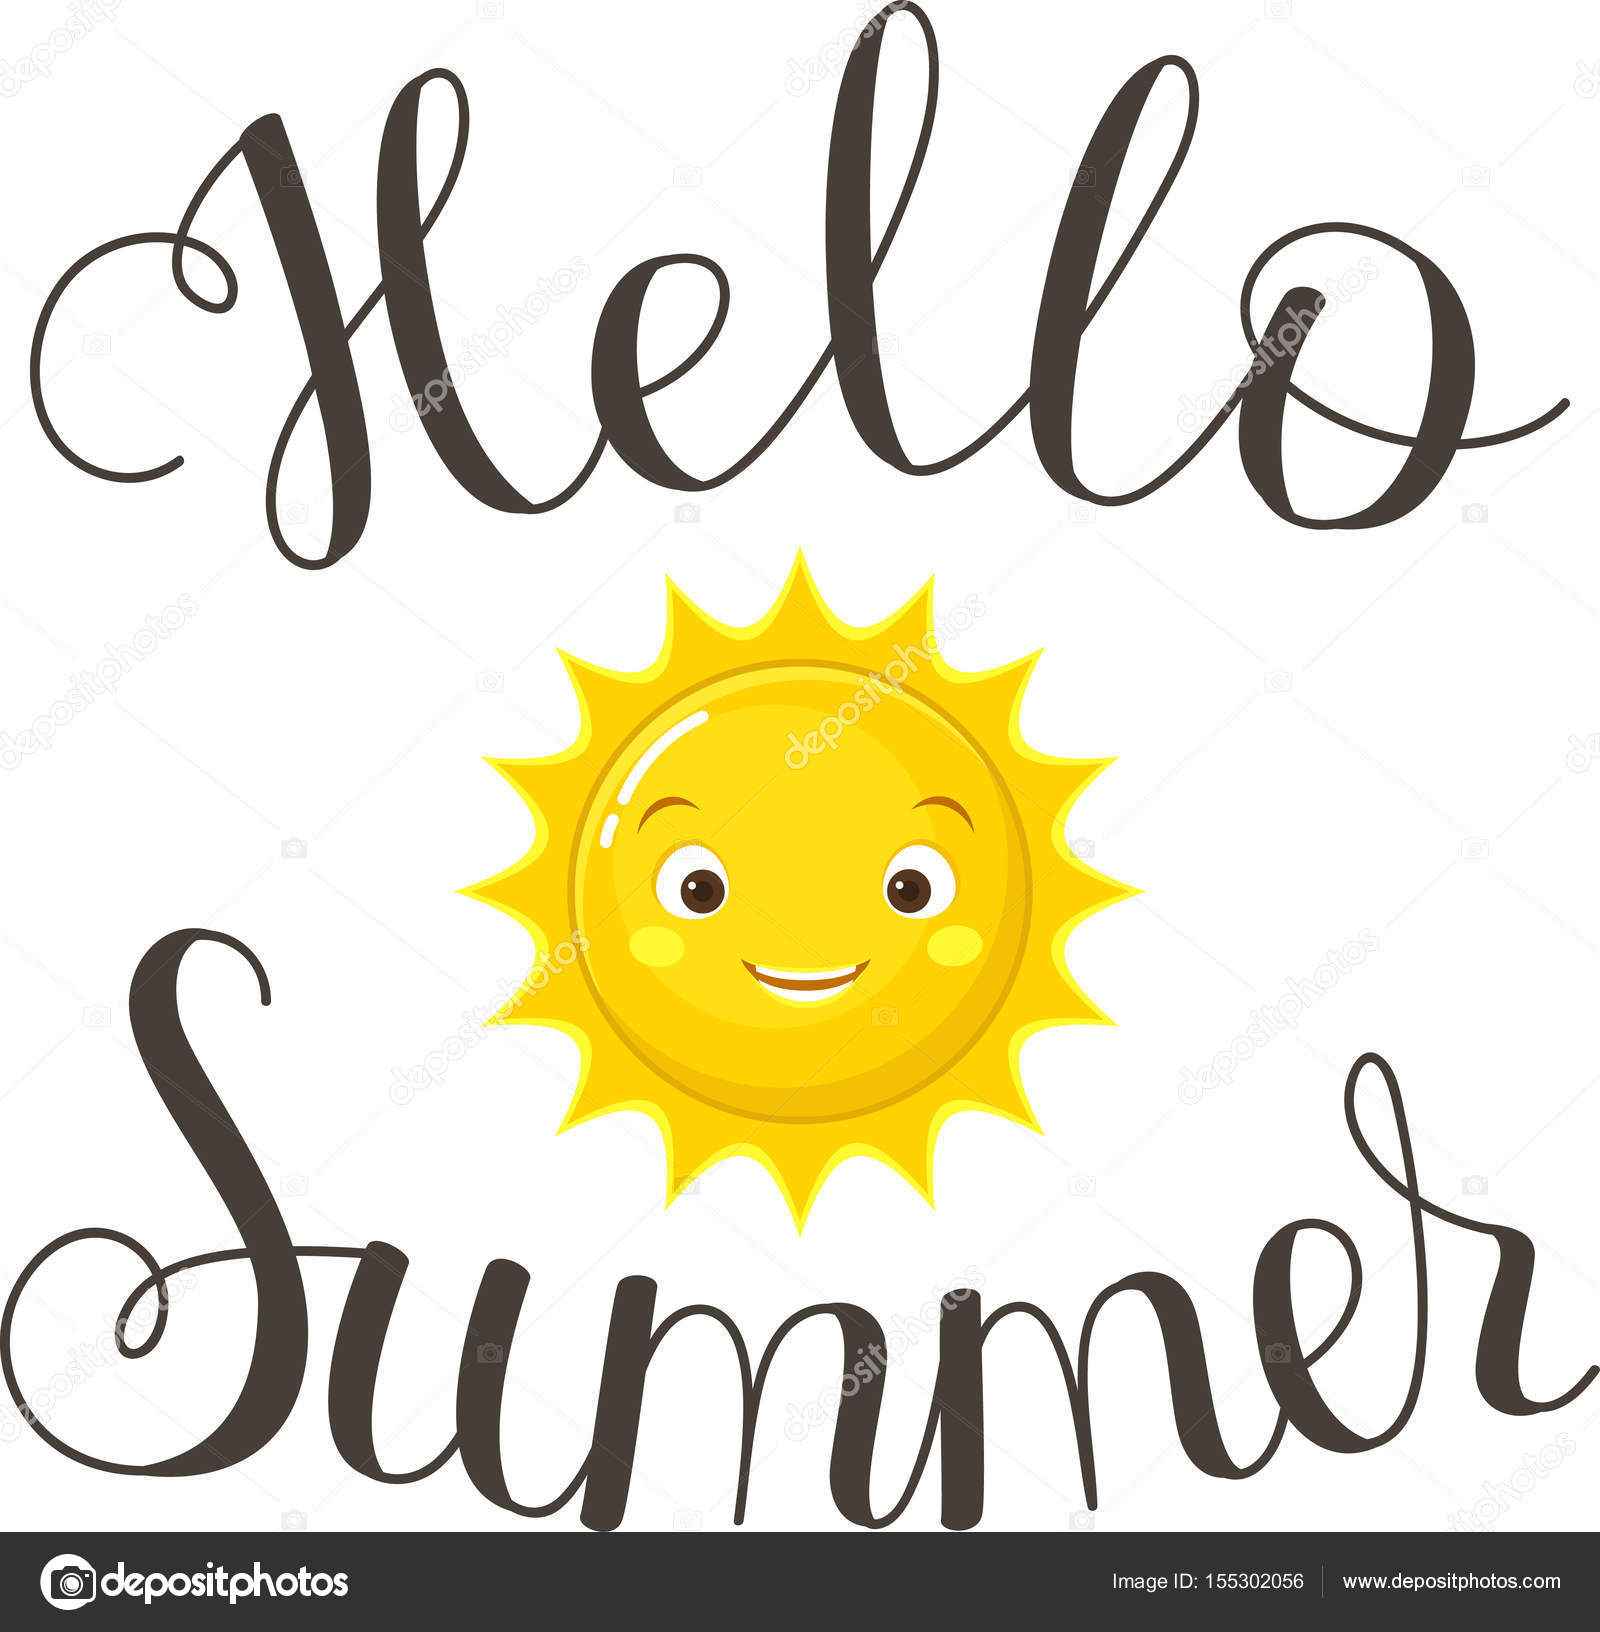 Hand Drawn Lettering Hello Summer. Hand Drawn Letters With Happy Smiling  Sun. Handwritten Quote. Poster, Greeting Card, Wall Art Or Wallpaper  Template.